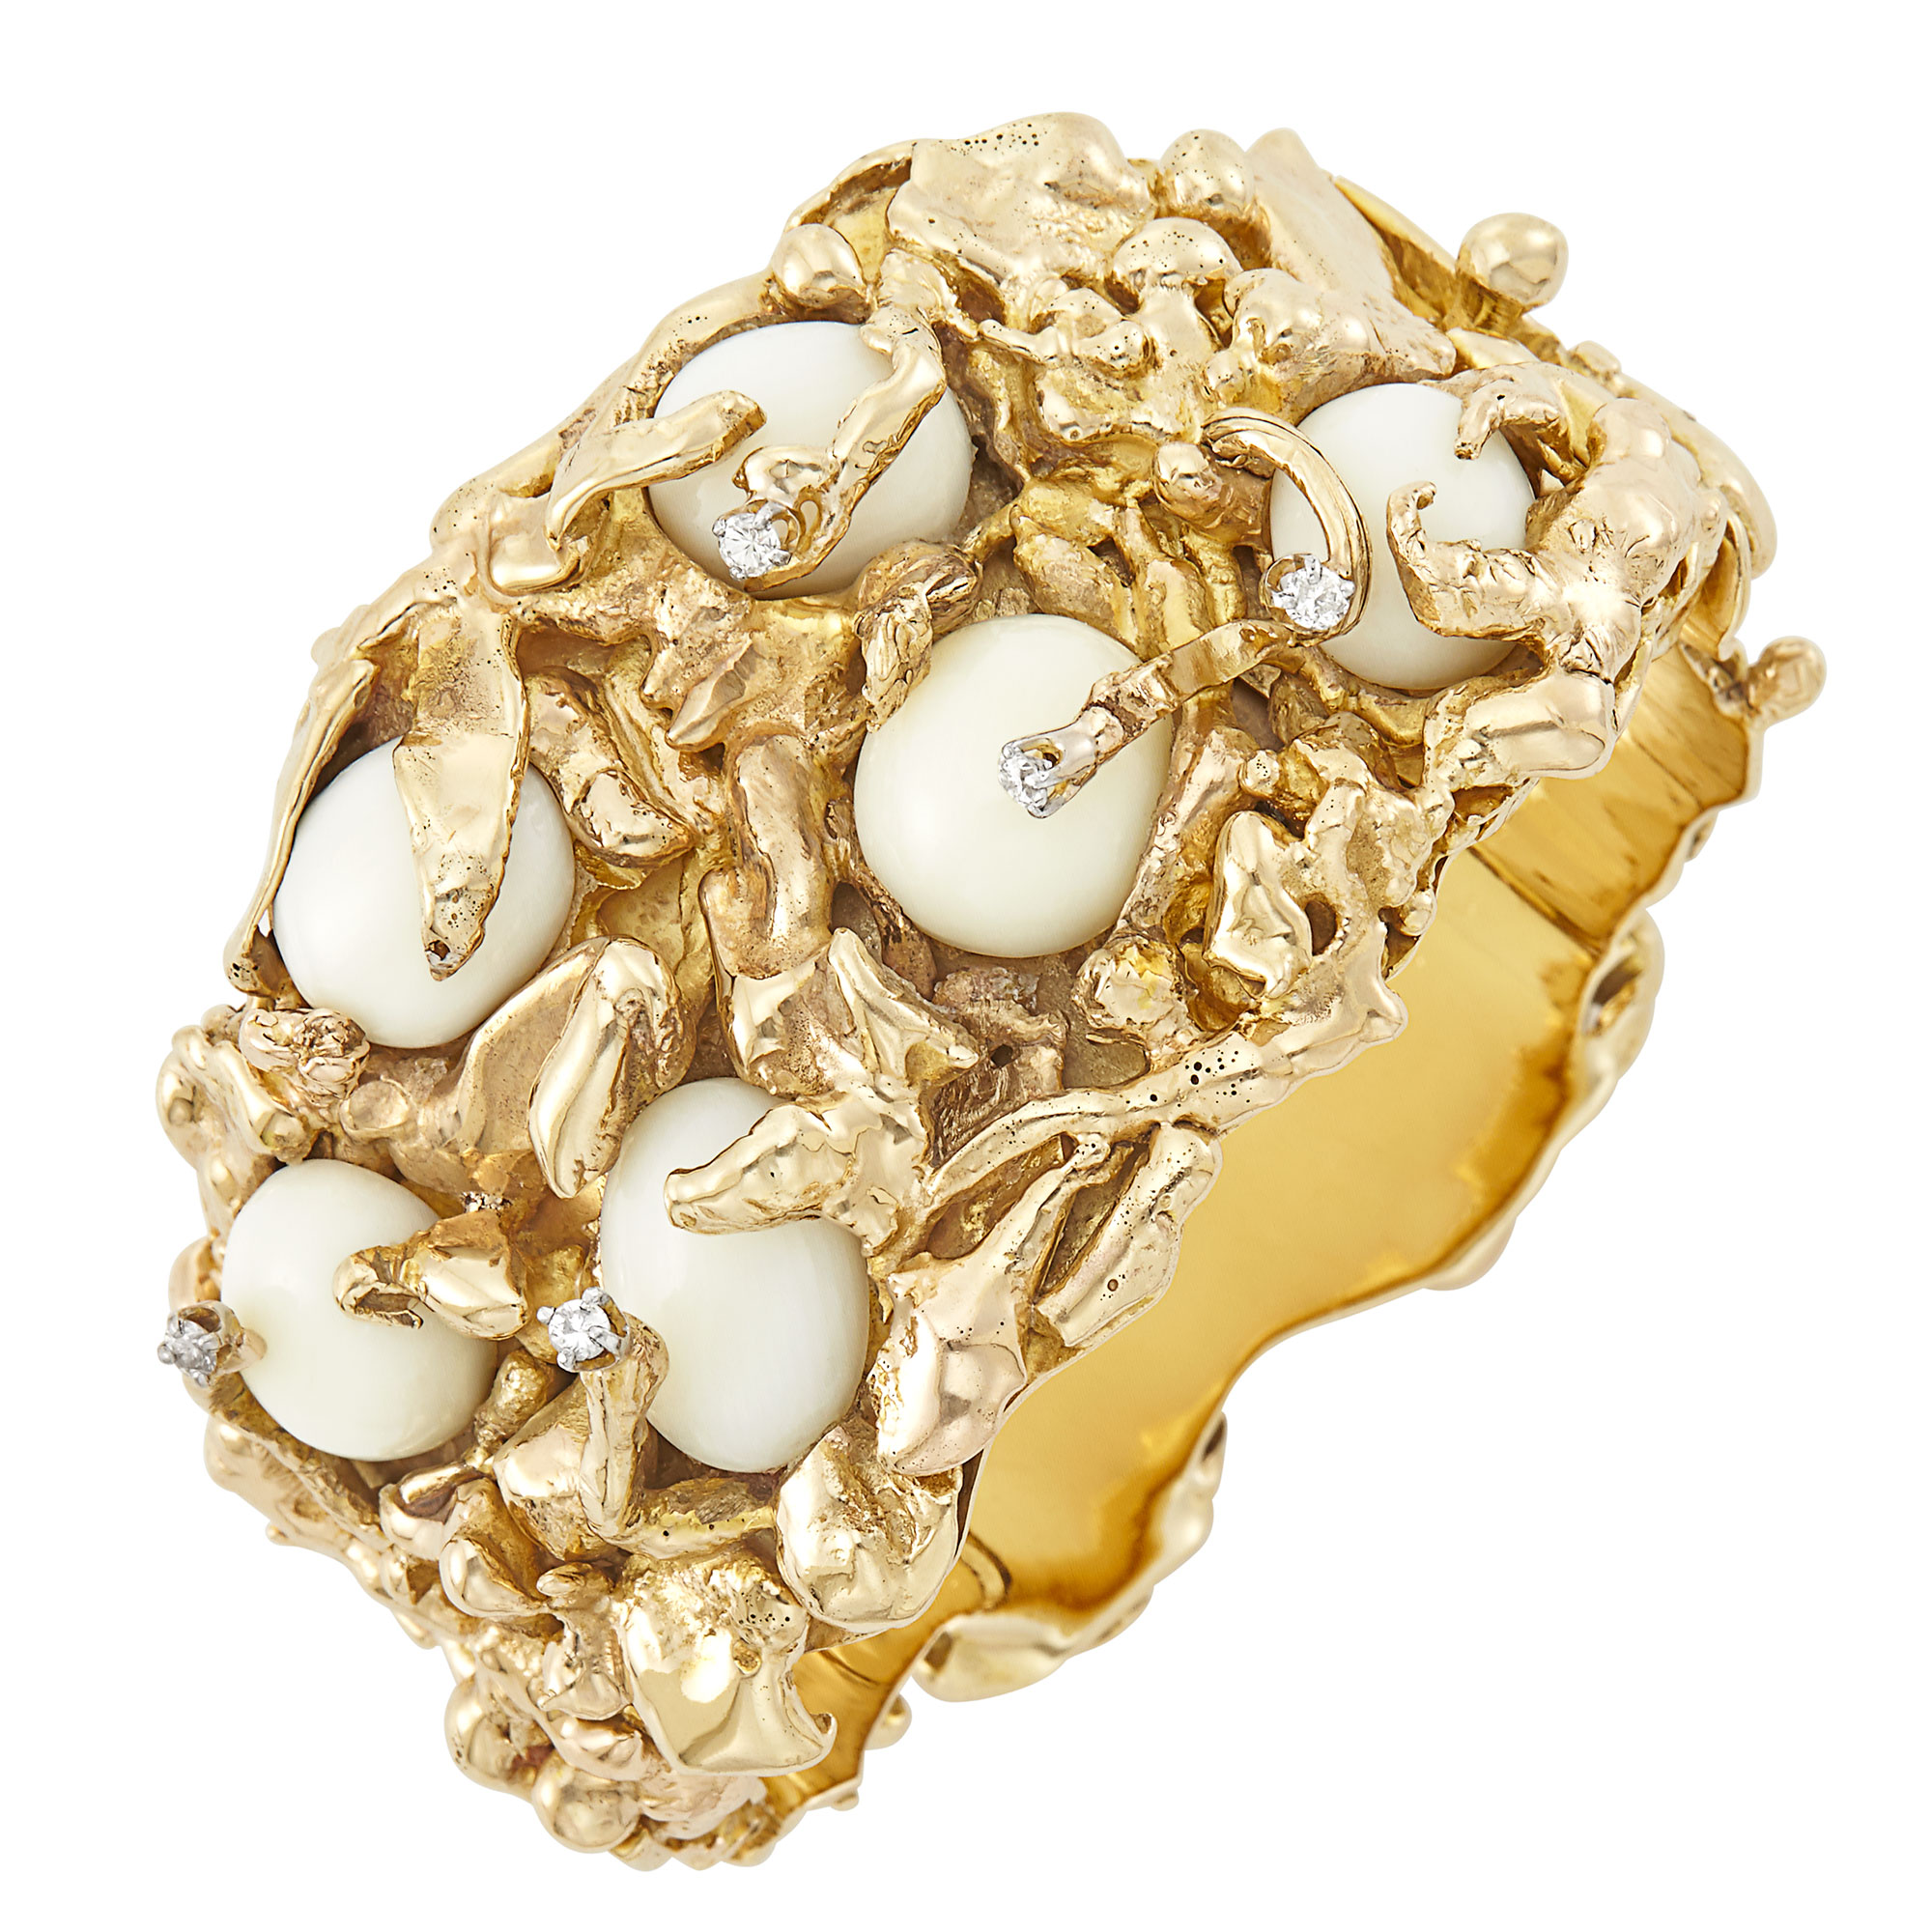 Lot image - Gold, White Coral and Diamond Cuff Bangle Bracelet